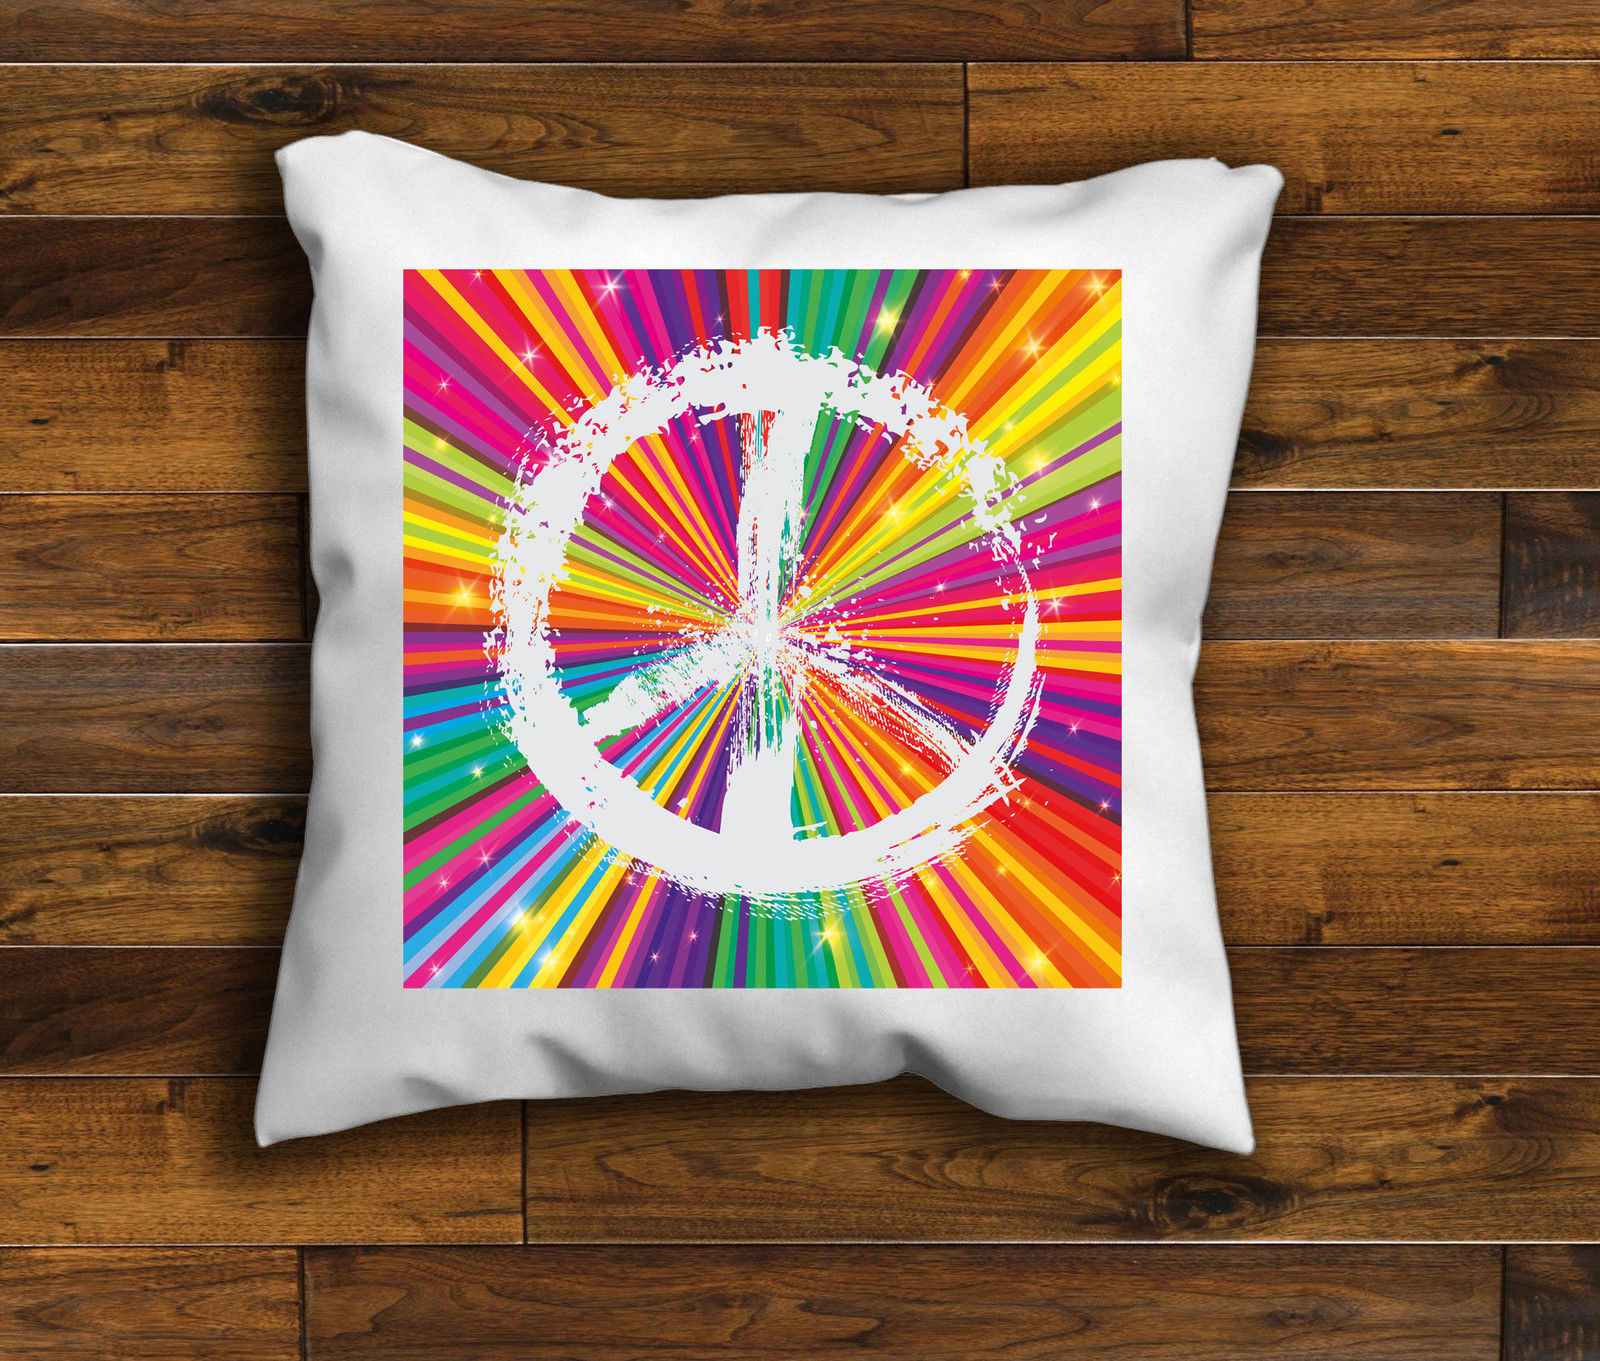 Retro Cushions Retro Cushion Cover Hippie Cushion Cover Love Peace Cushion